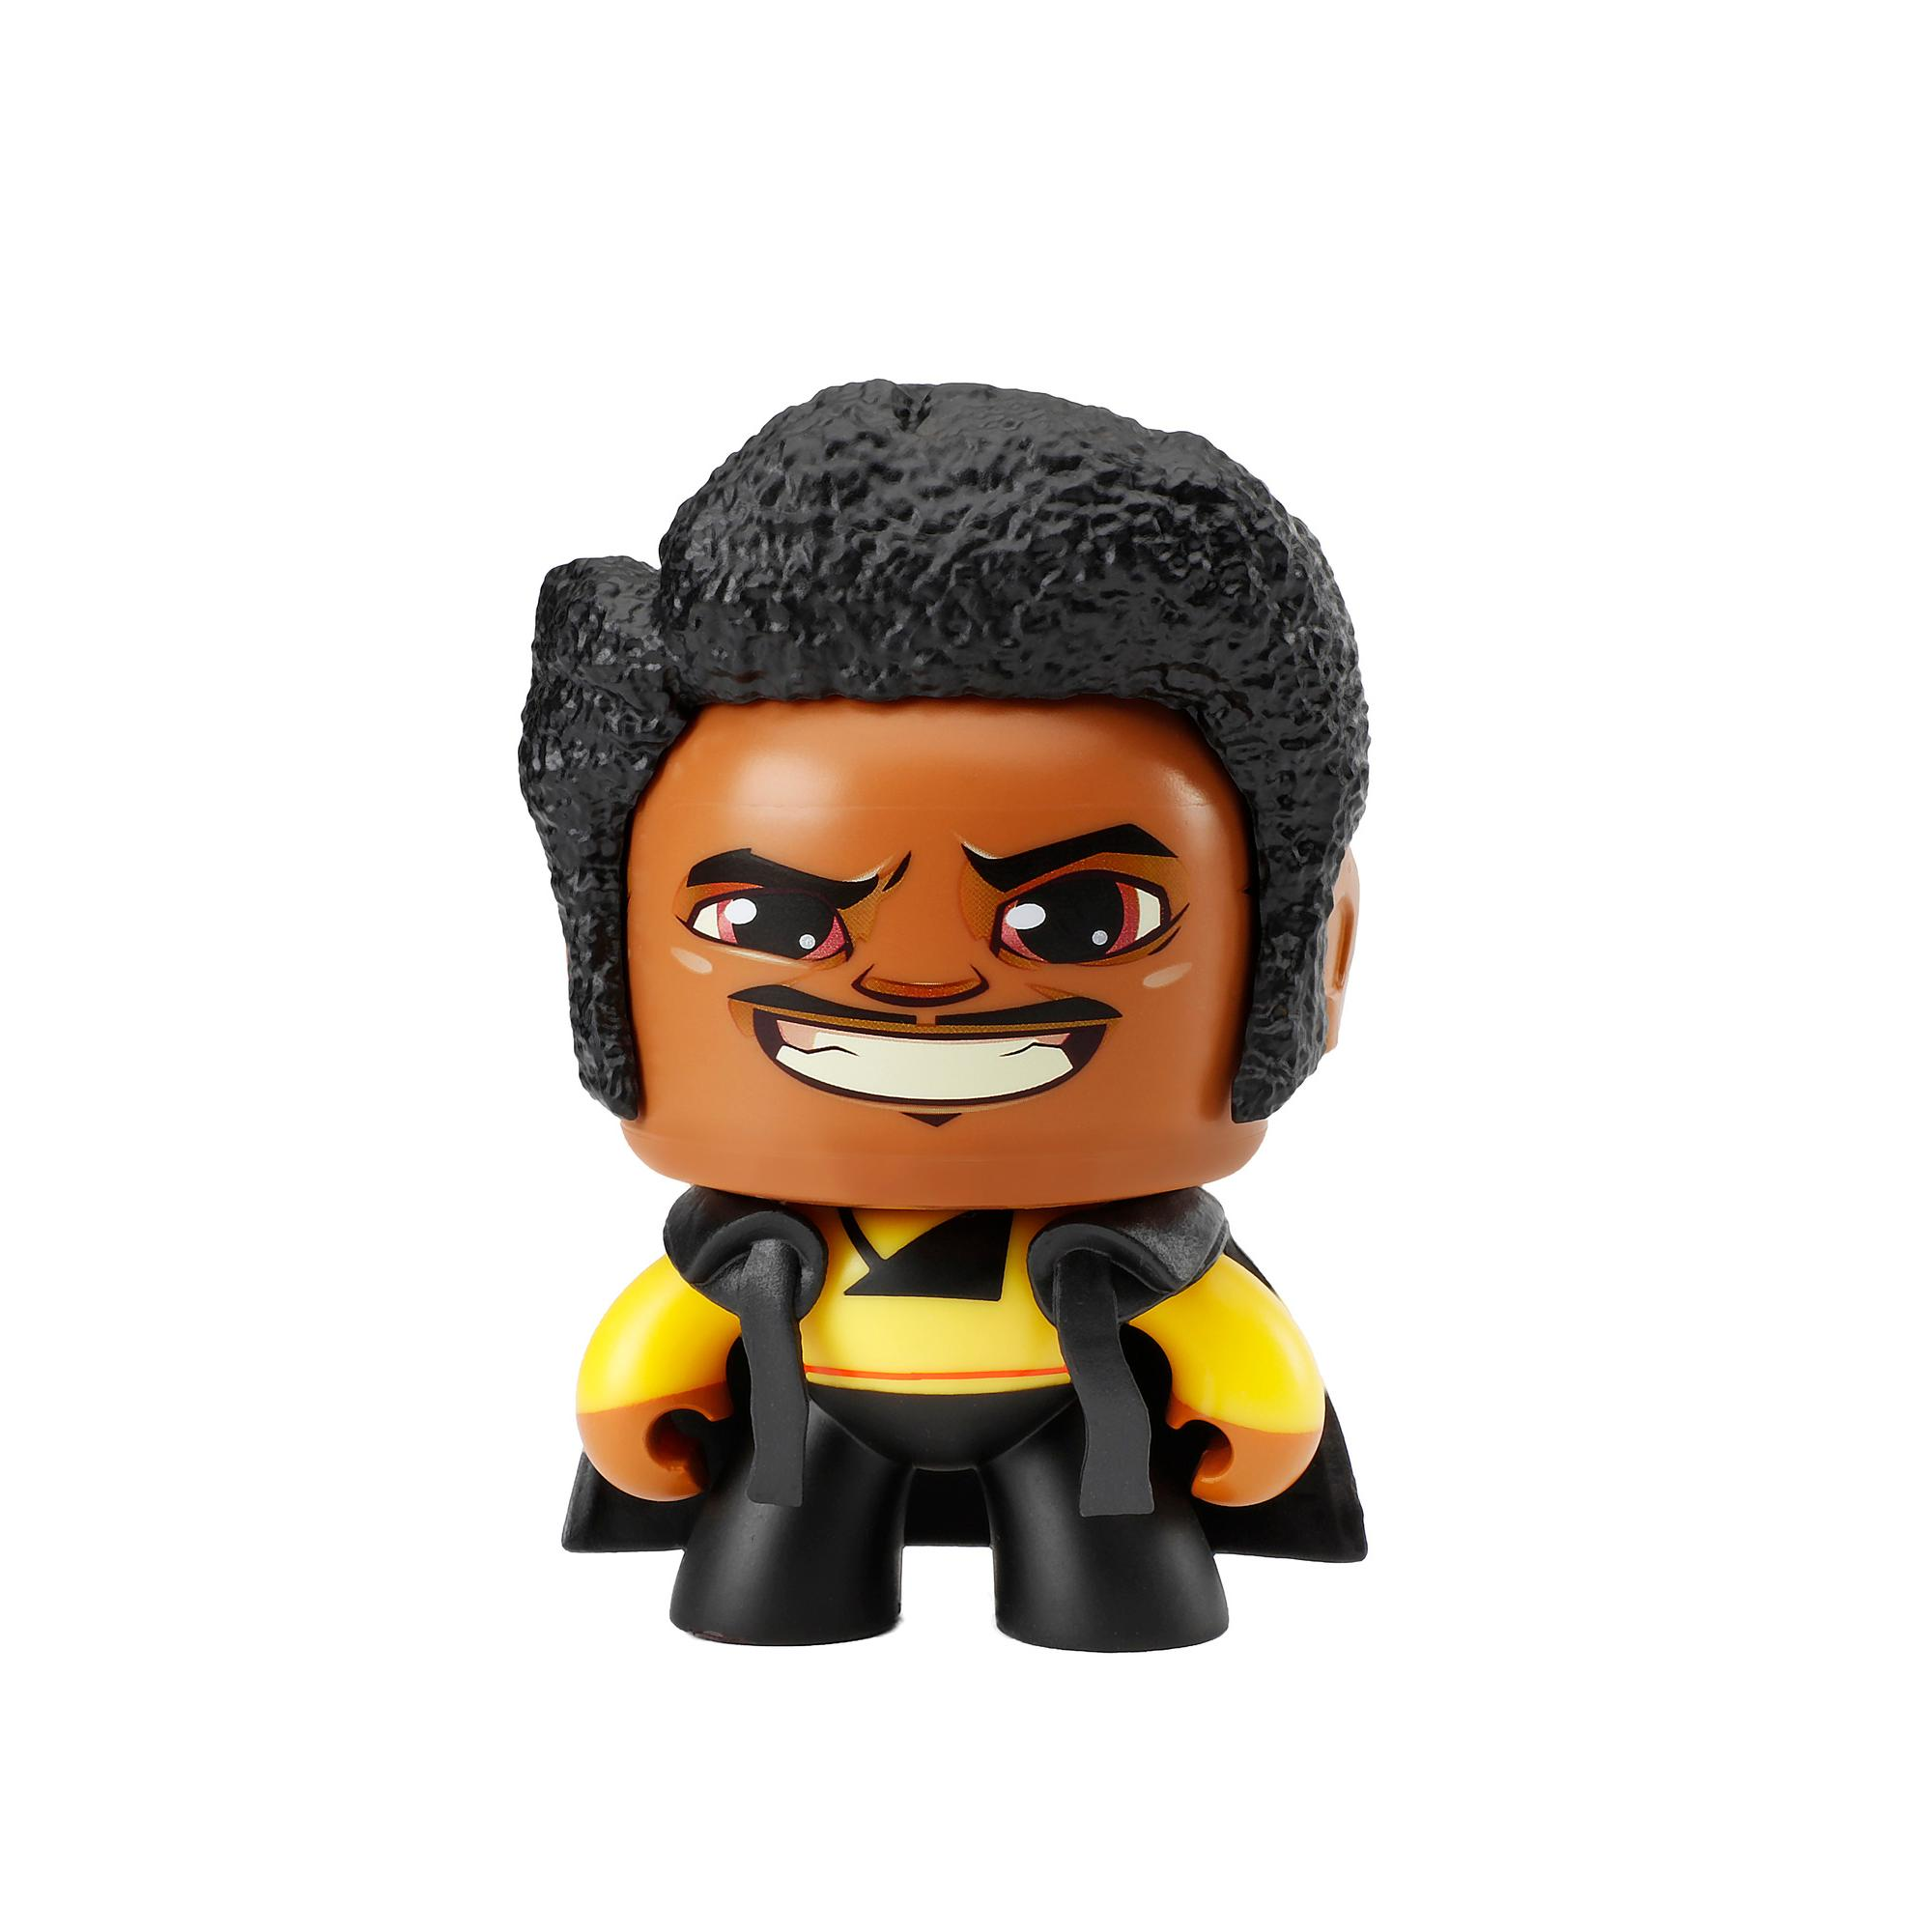 Star Wars Mighty Muggs Lando Calrissian #11